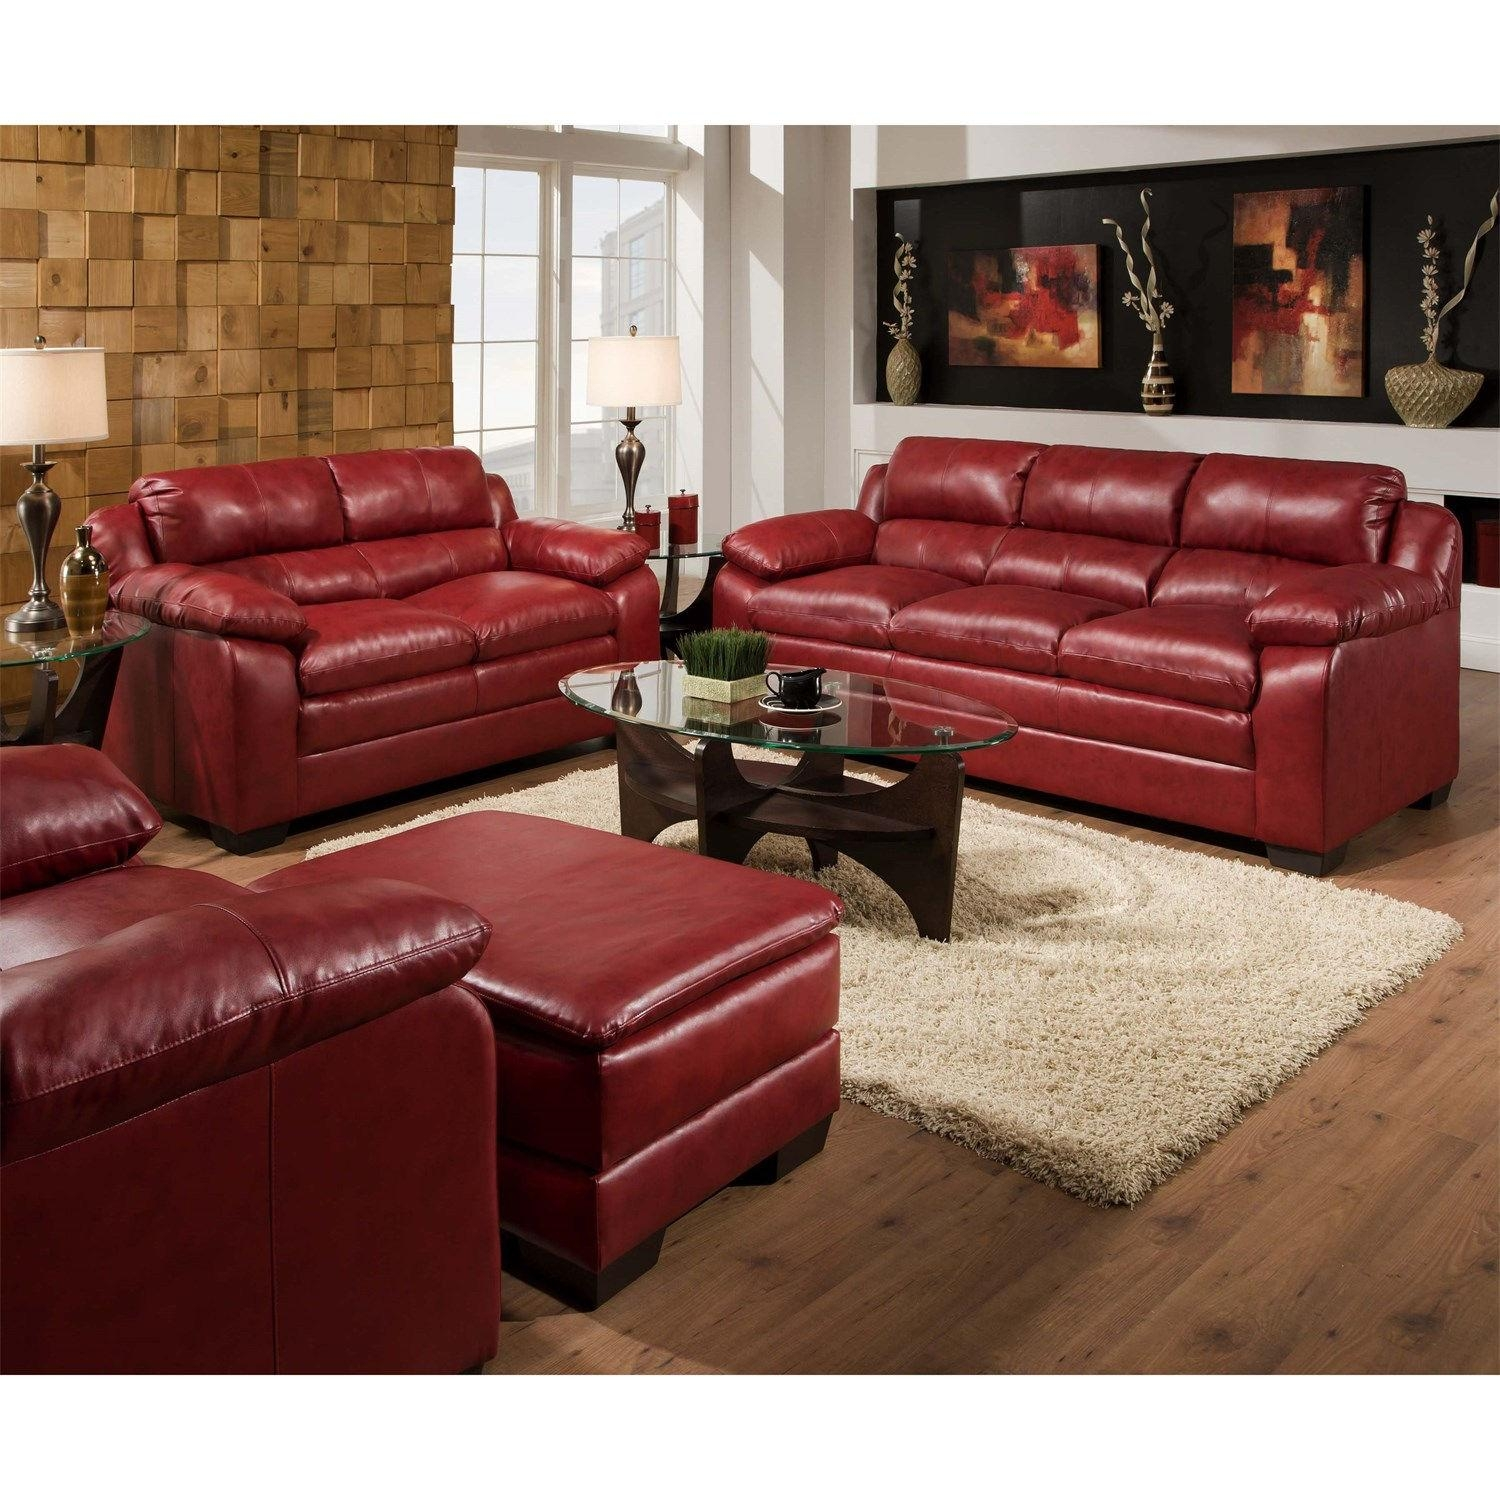 Simmons Bonded Leather Sofa With Inspiration Hd Pictures 20560 Intended For Simmons Bonded Leather Sofas (Image 11 of 20)